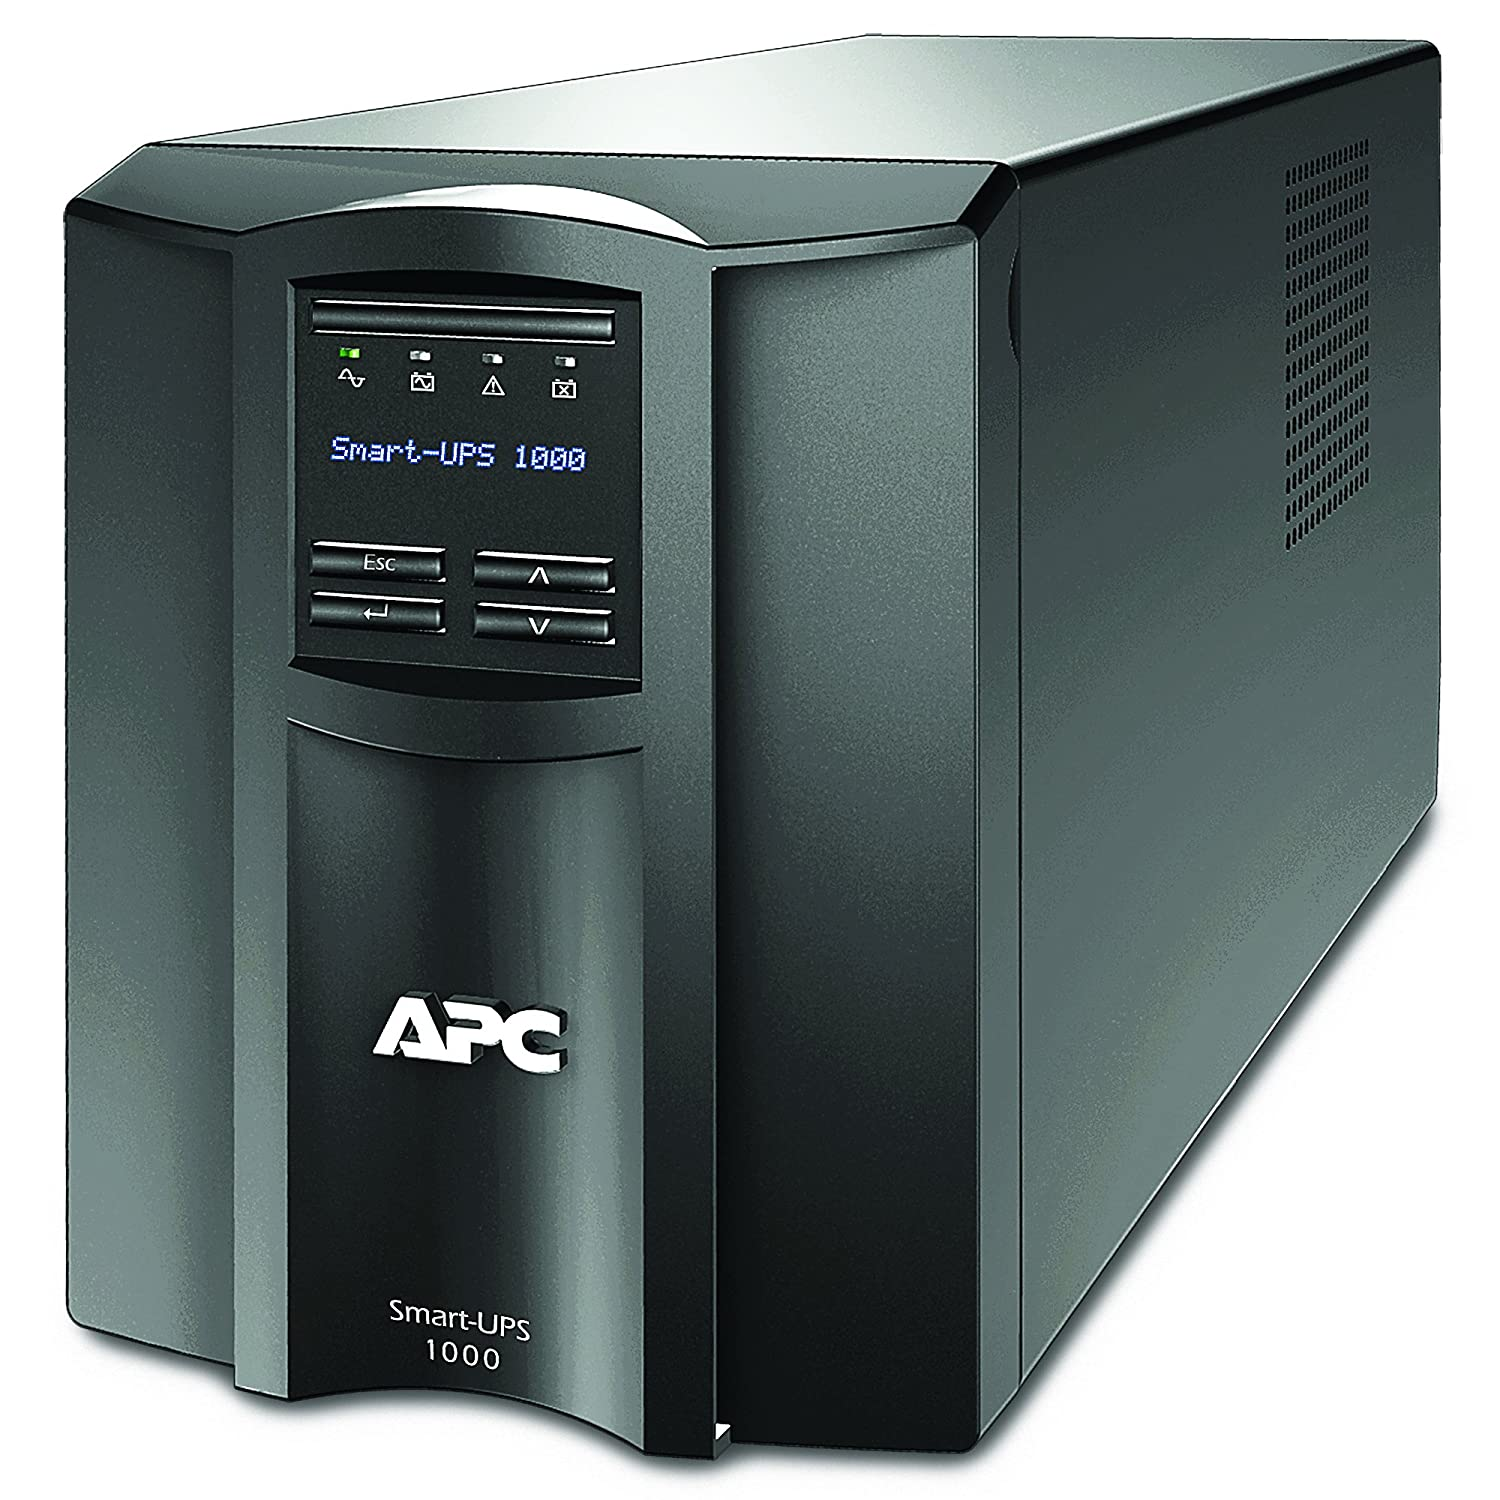 apc power saving back ups pro uninterruptible power supply 900va apc smart ups smt uninterruptible power supply 1000va smt1000i line interactive